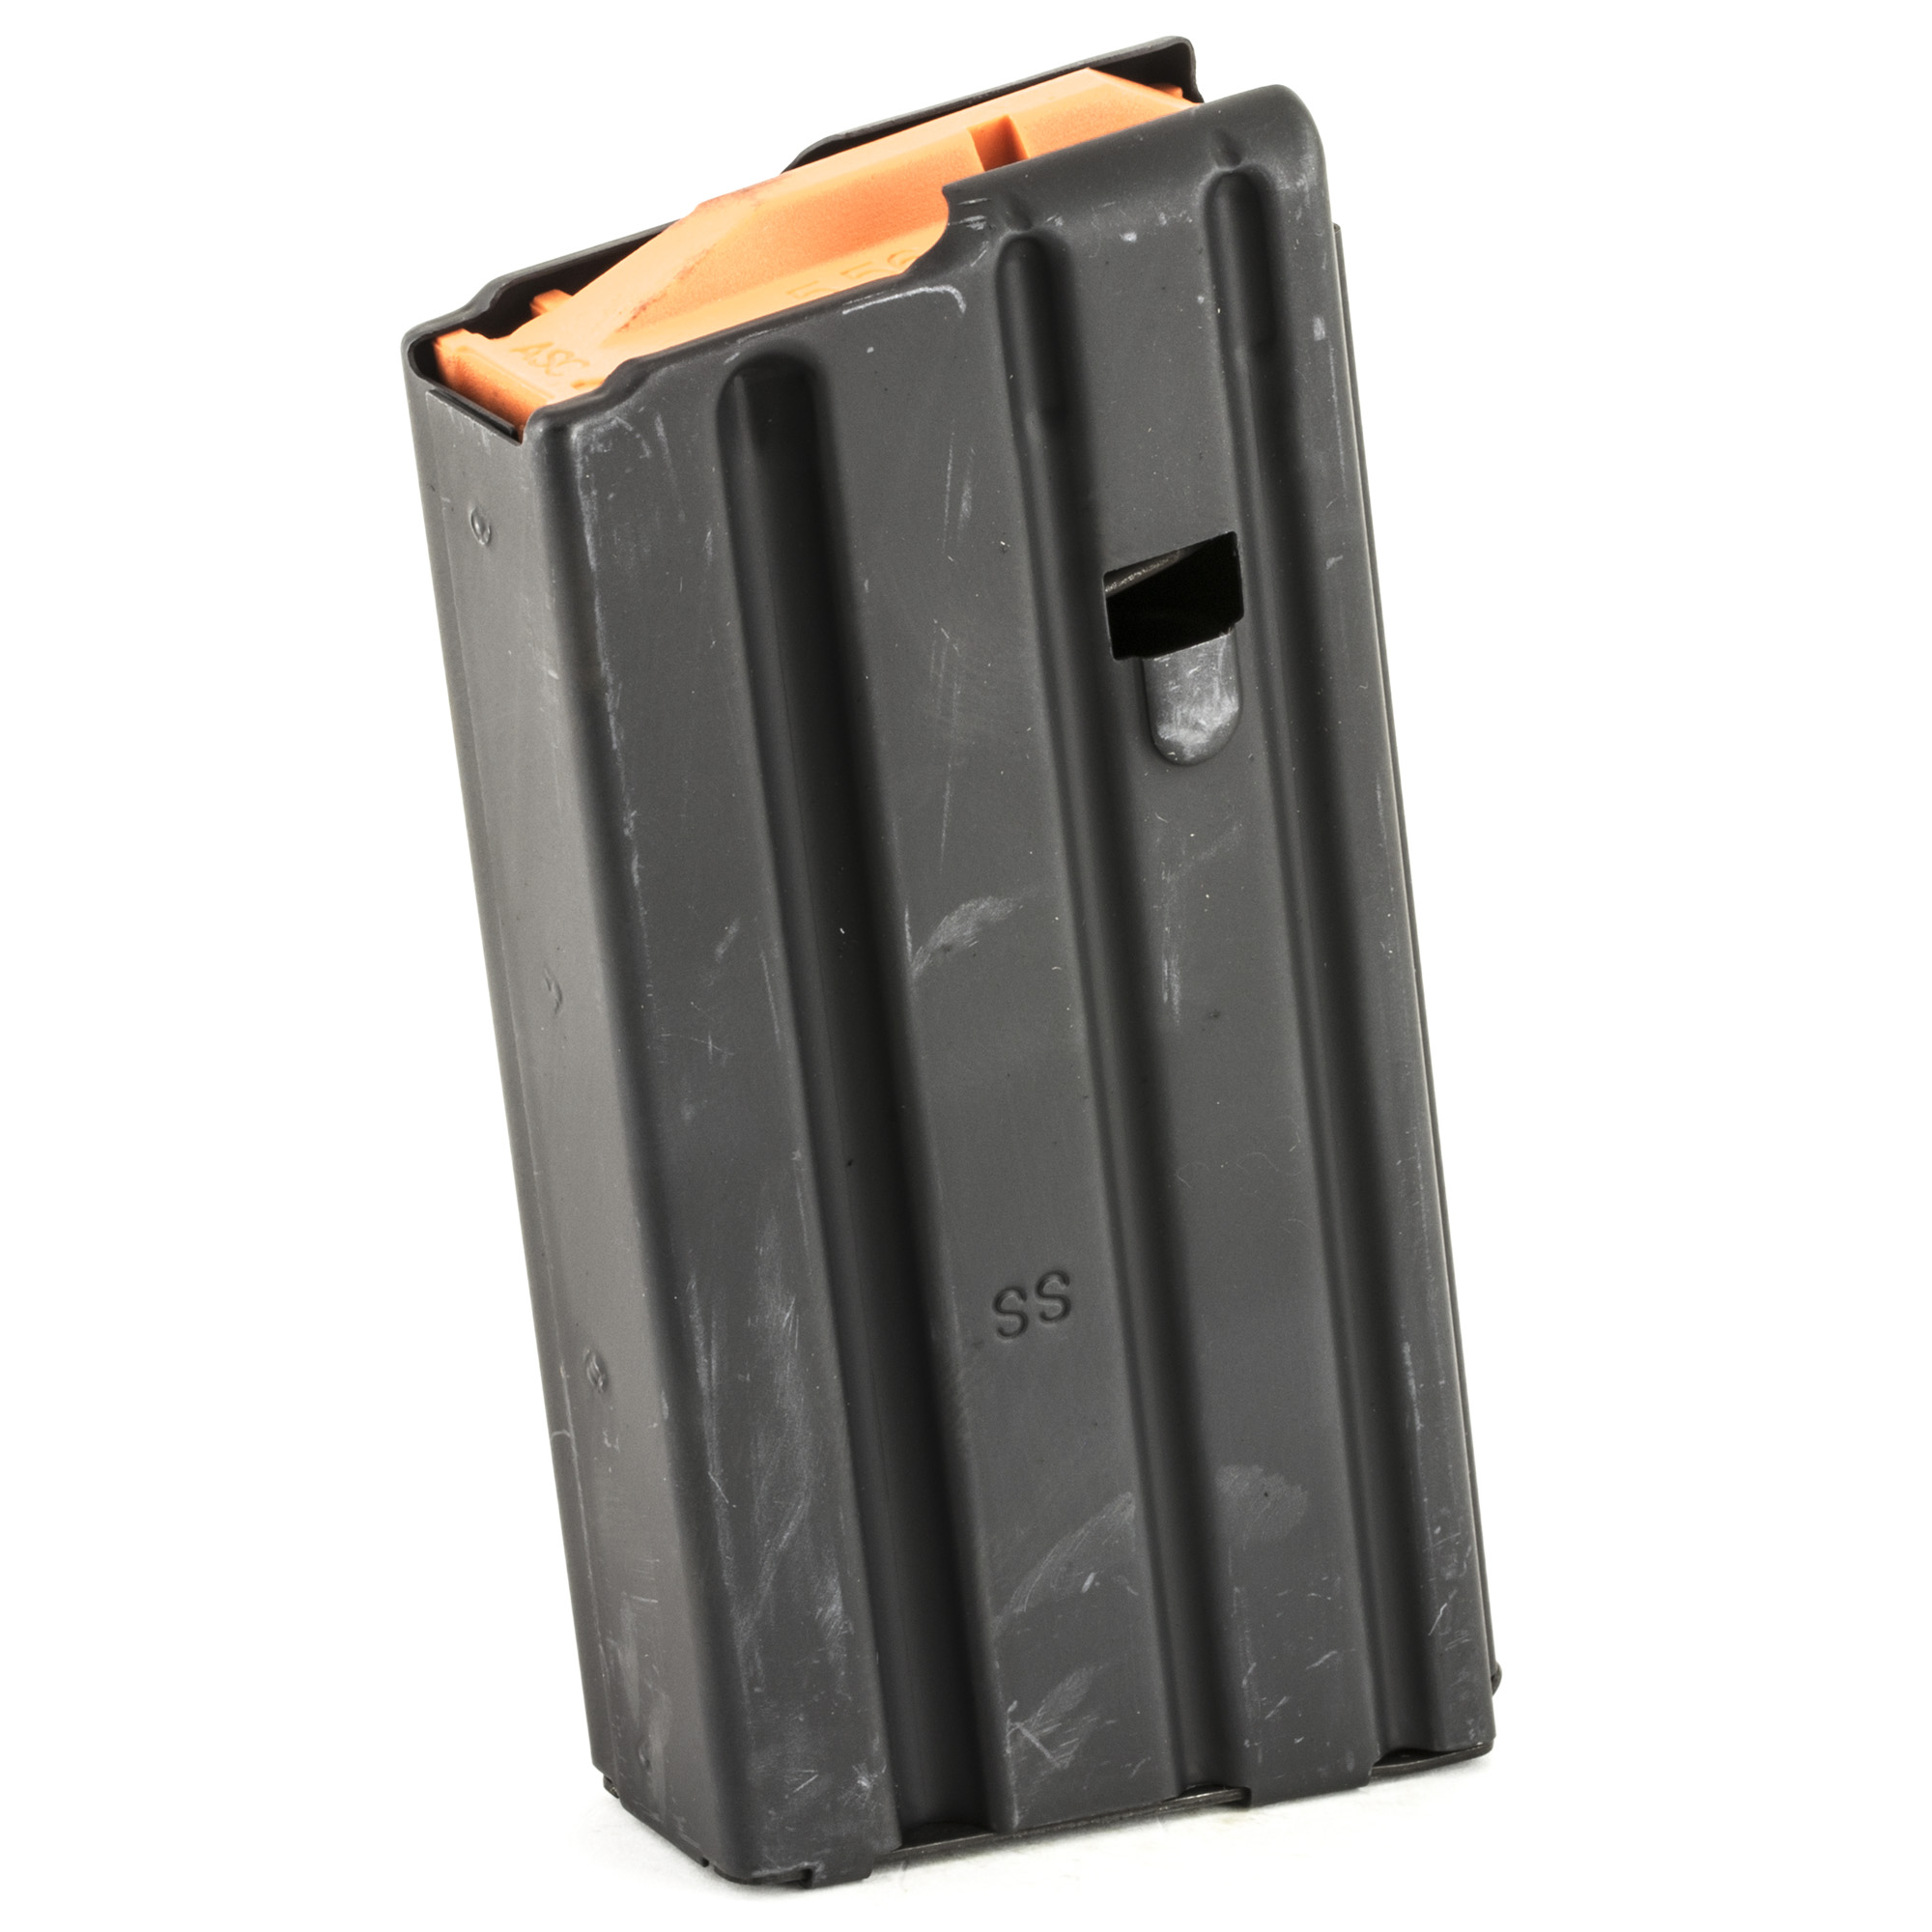 Ammunition Storage Components (ASC) builds some of the best magazines available on the market today. ASC magazines are built with the highest quality components to ensure reliable functioning and increased longevity. This is why they have become the approved supplier for many of the most well-known firearms manufacturers in the nation.